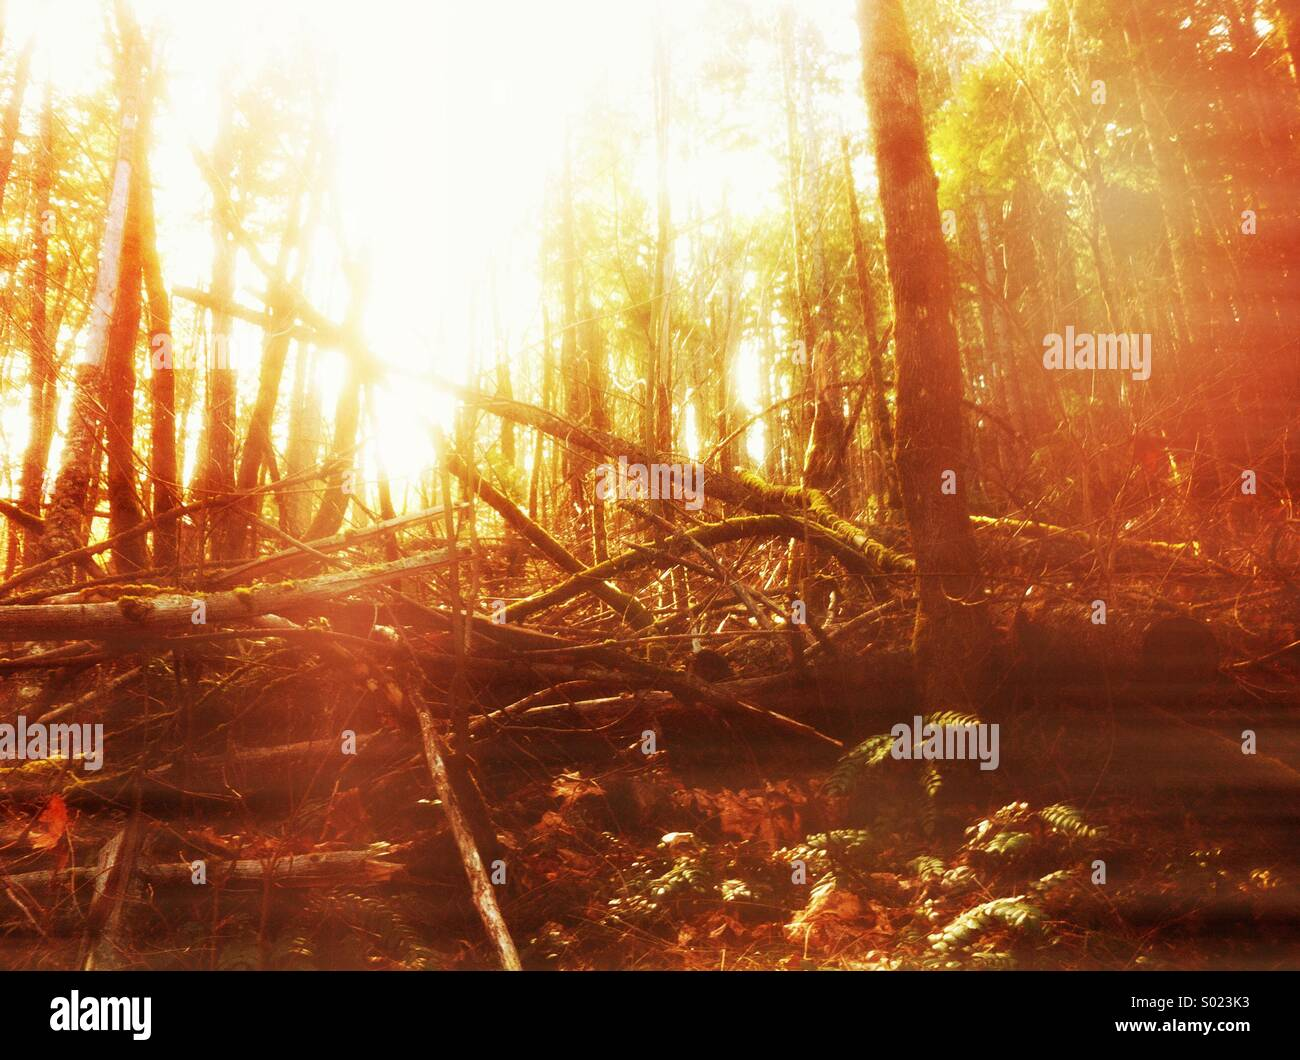 Bright scene in forest at sunset - Stock Image